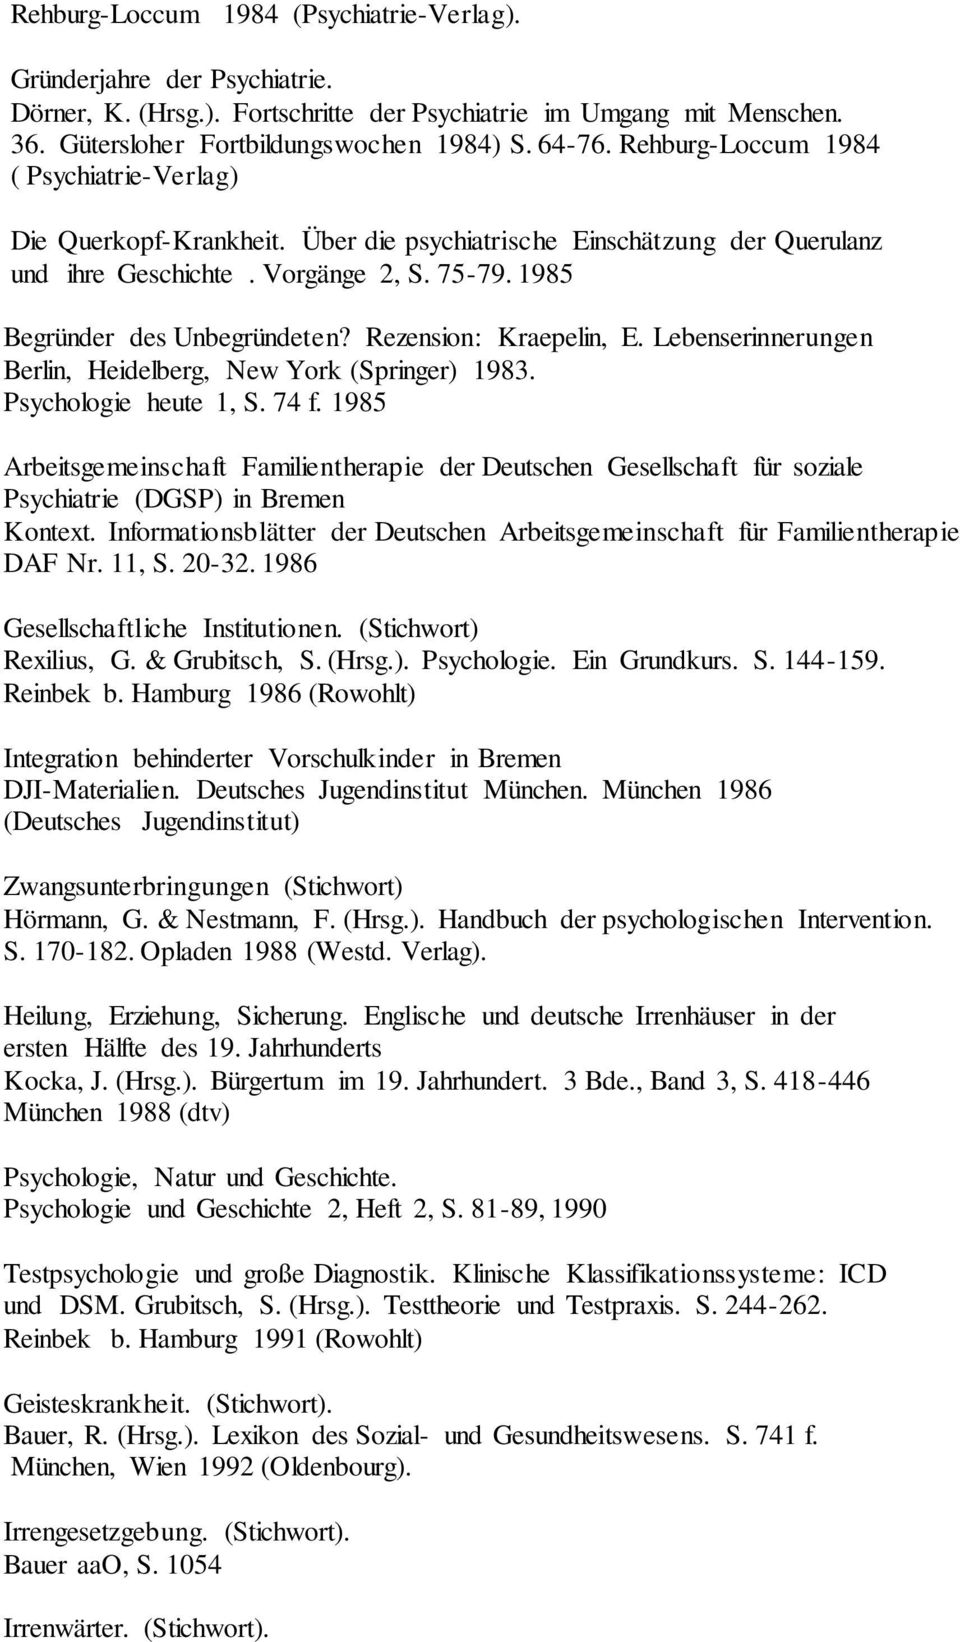 Psychiater datiert Psychologin